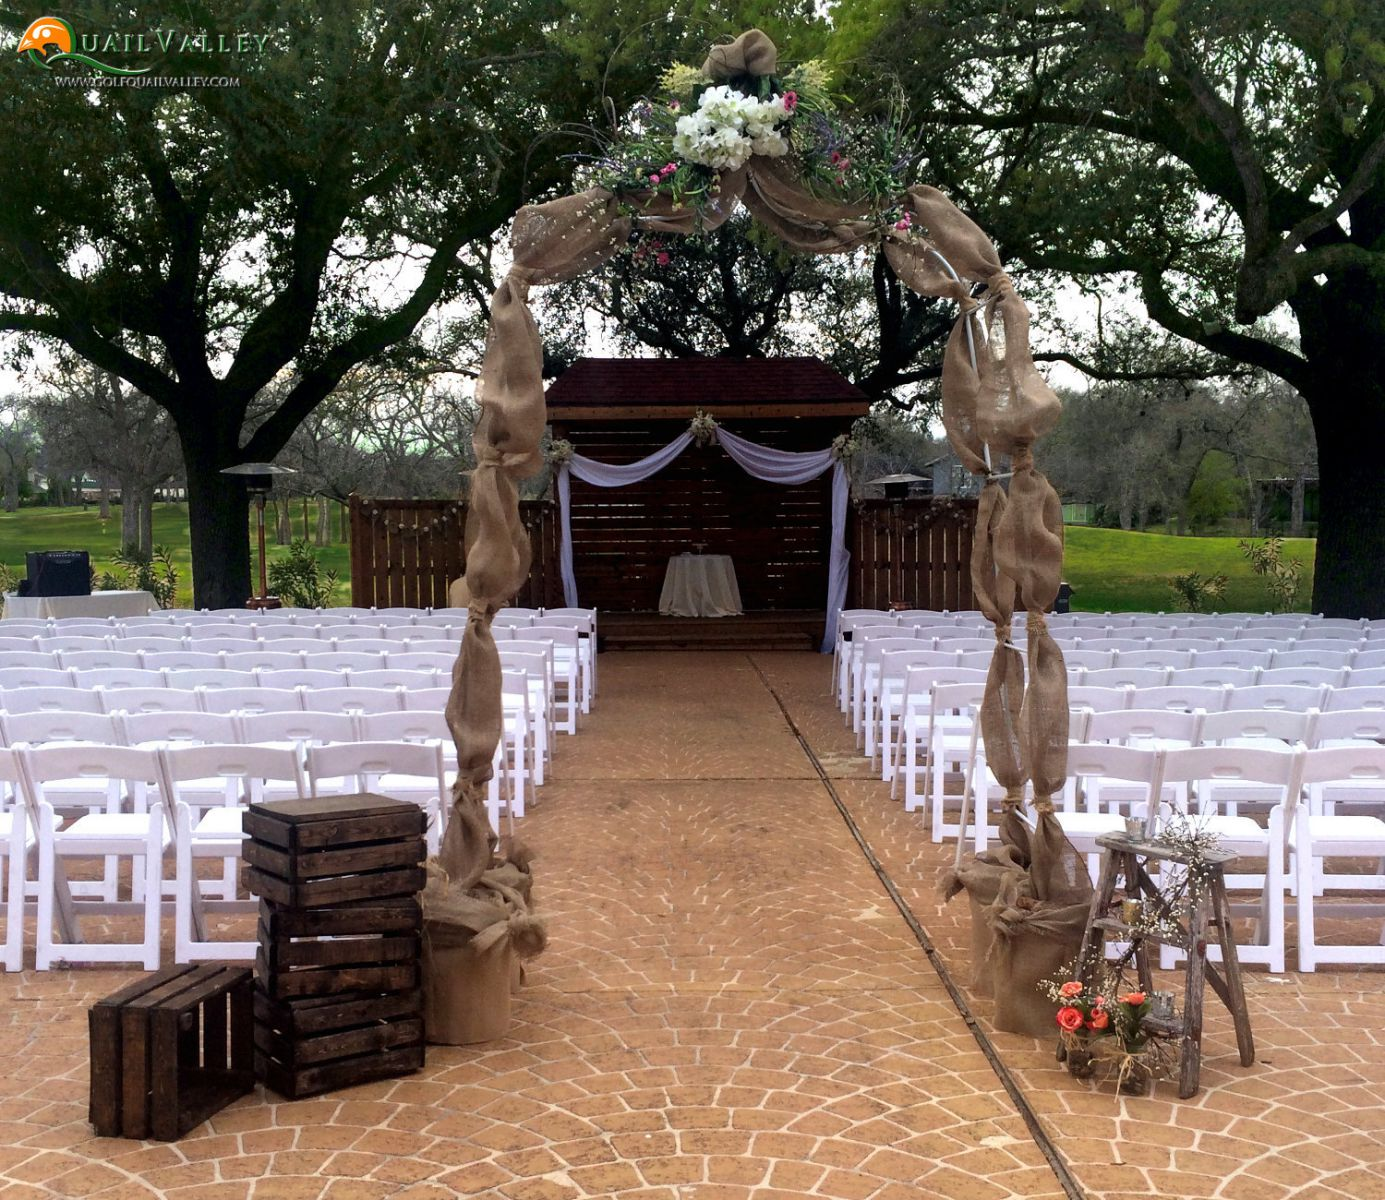 The Beautiful Wedding Venue At Quail Valley In Houston, TX